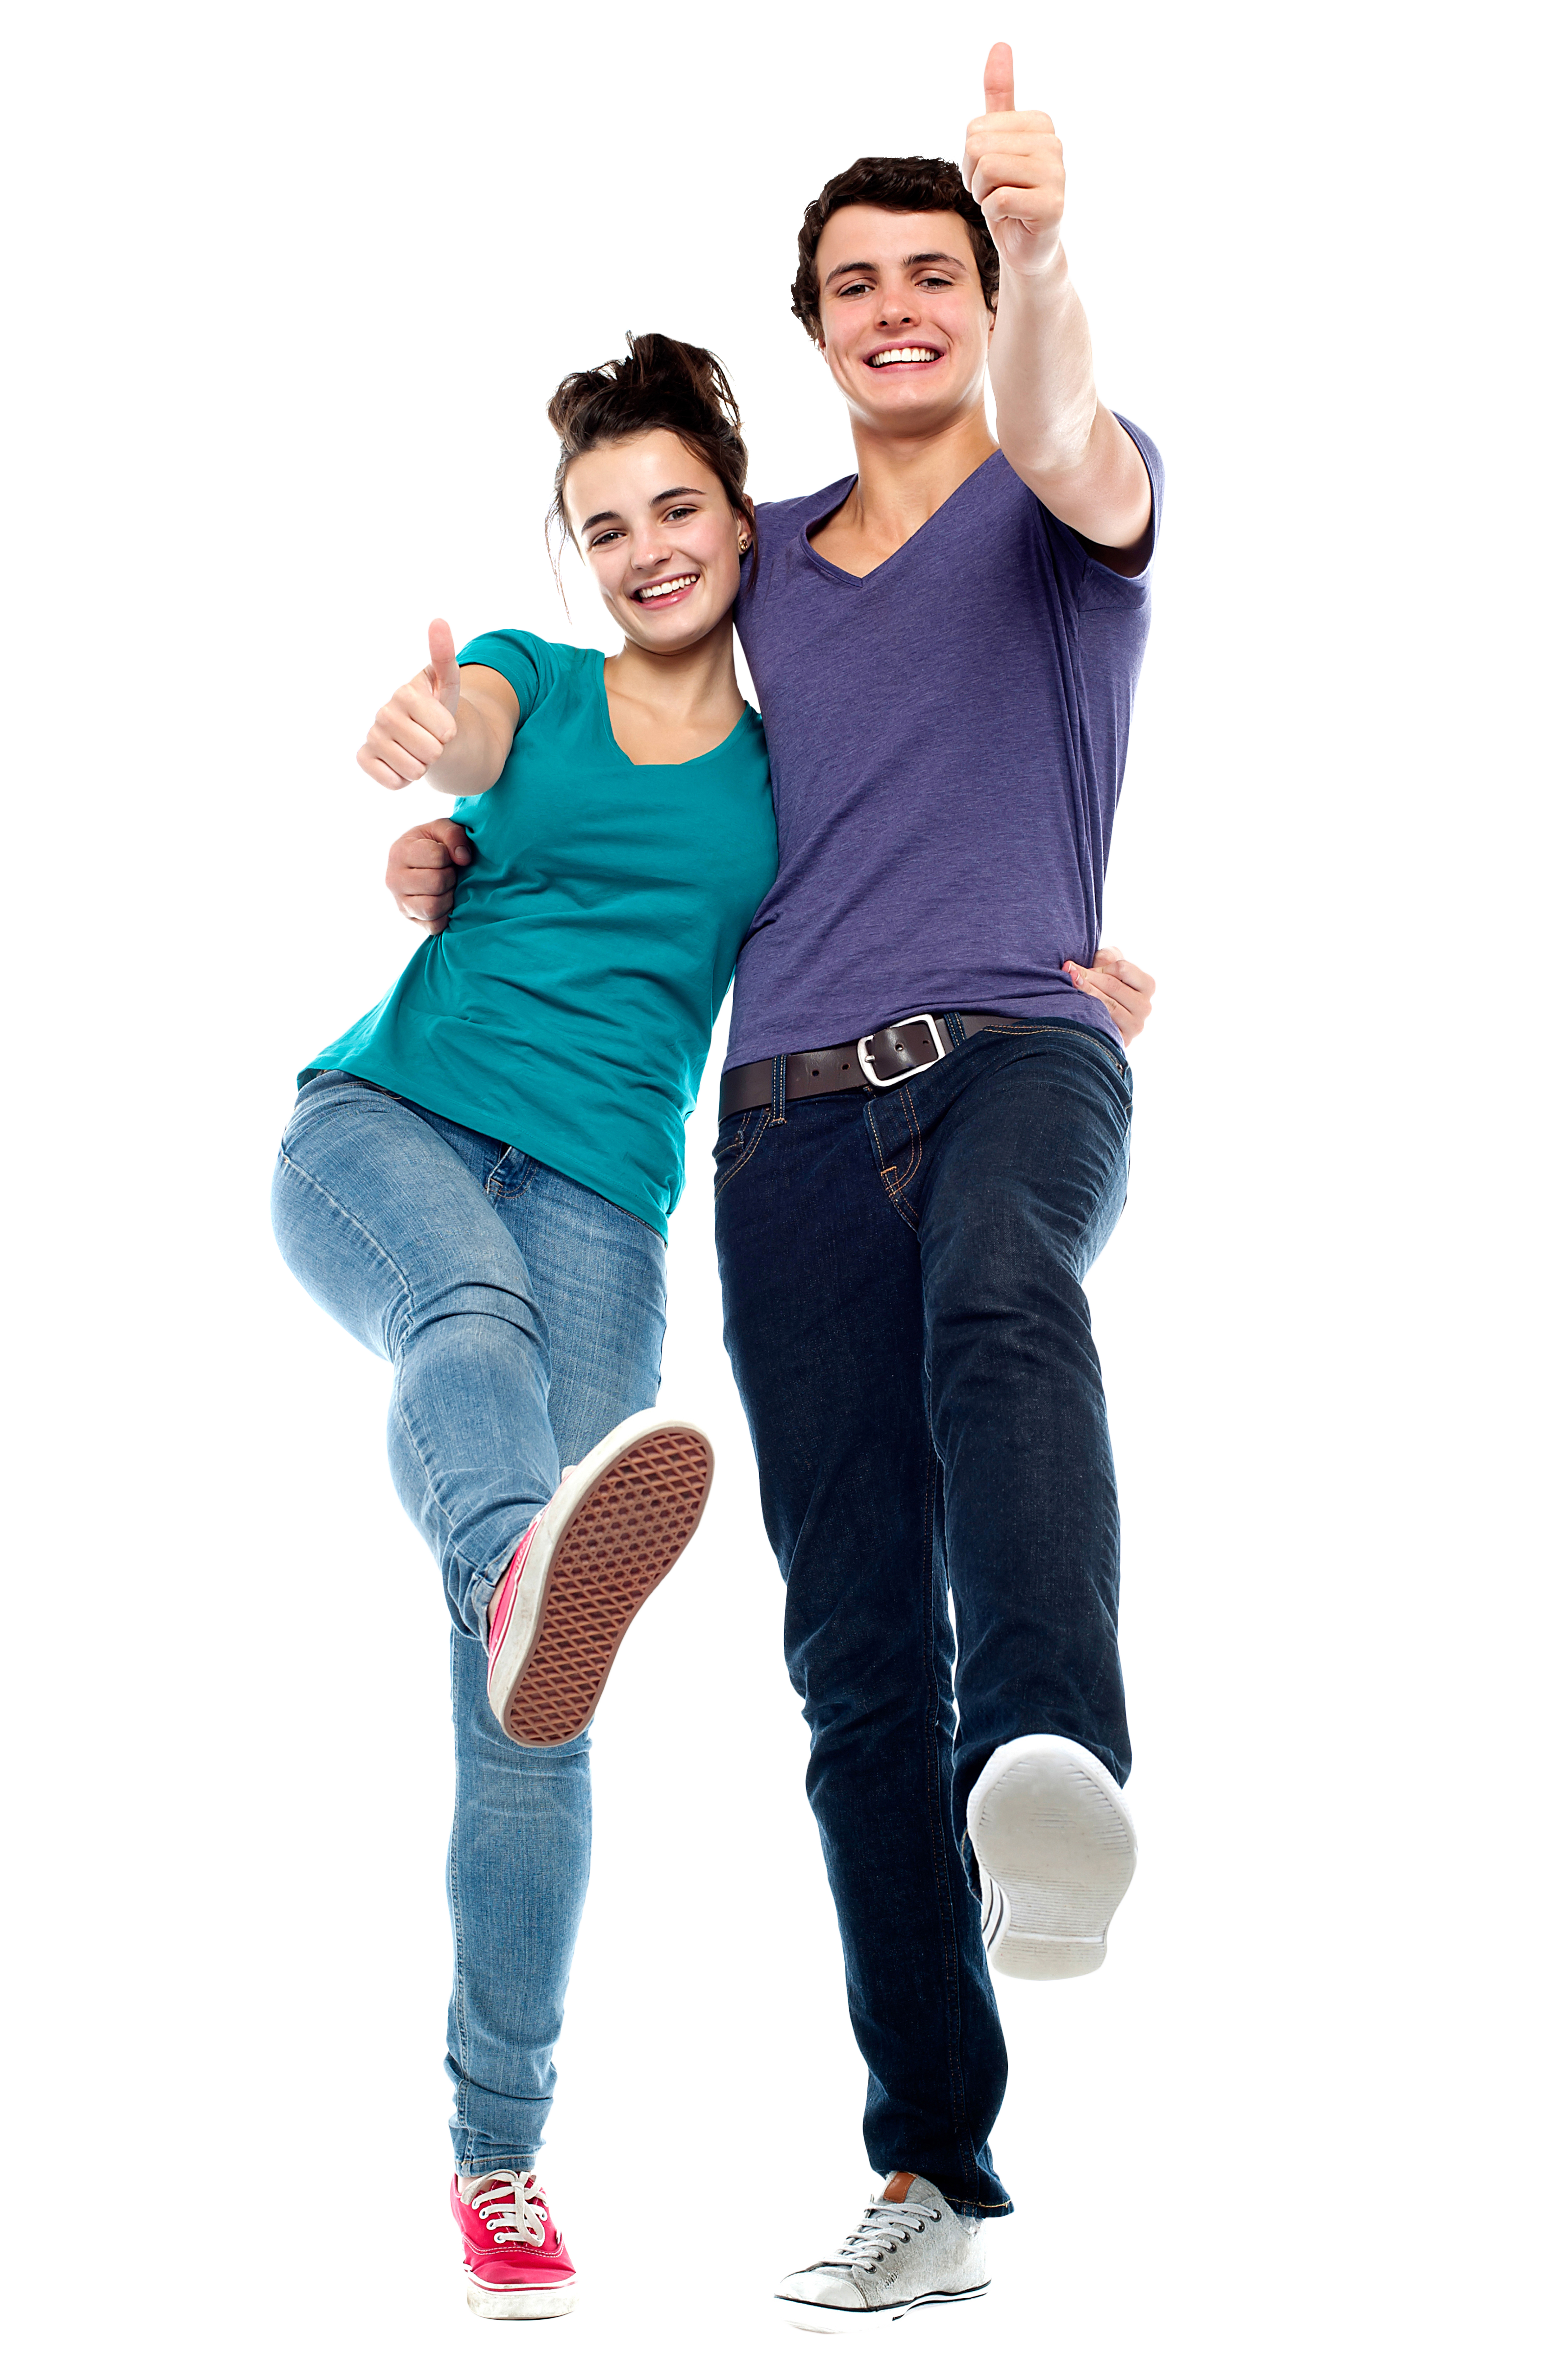 Couple standing png. Royalty free images play